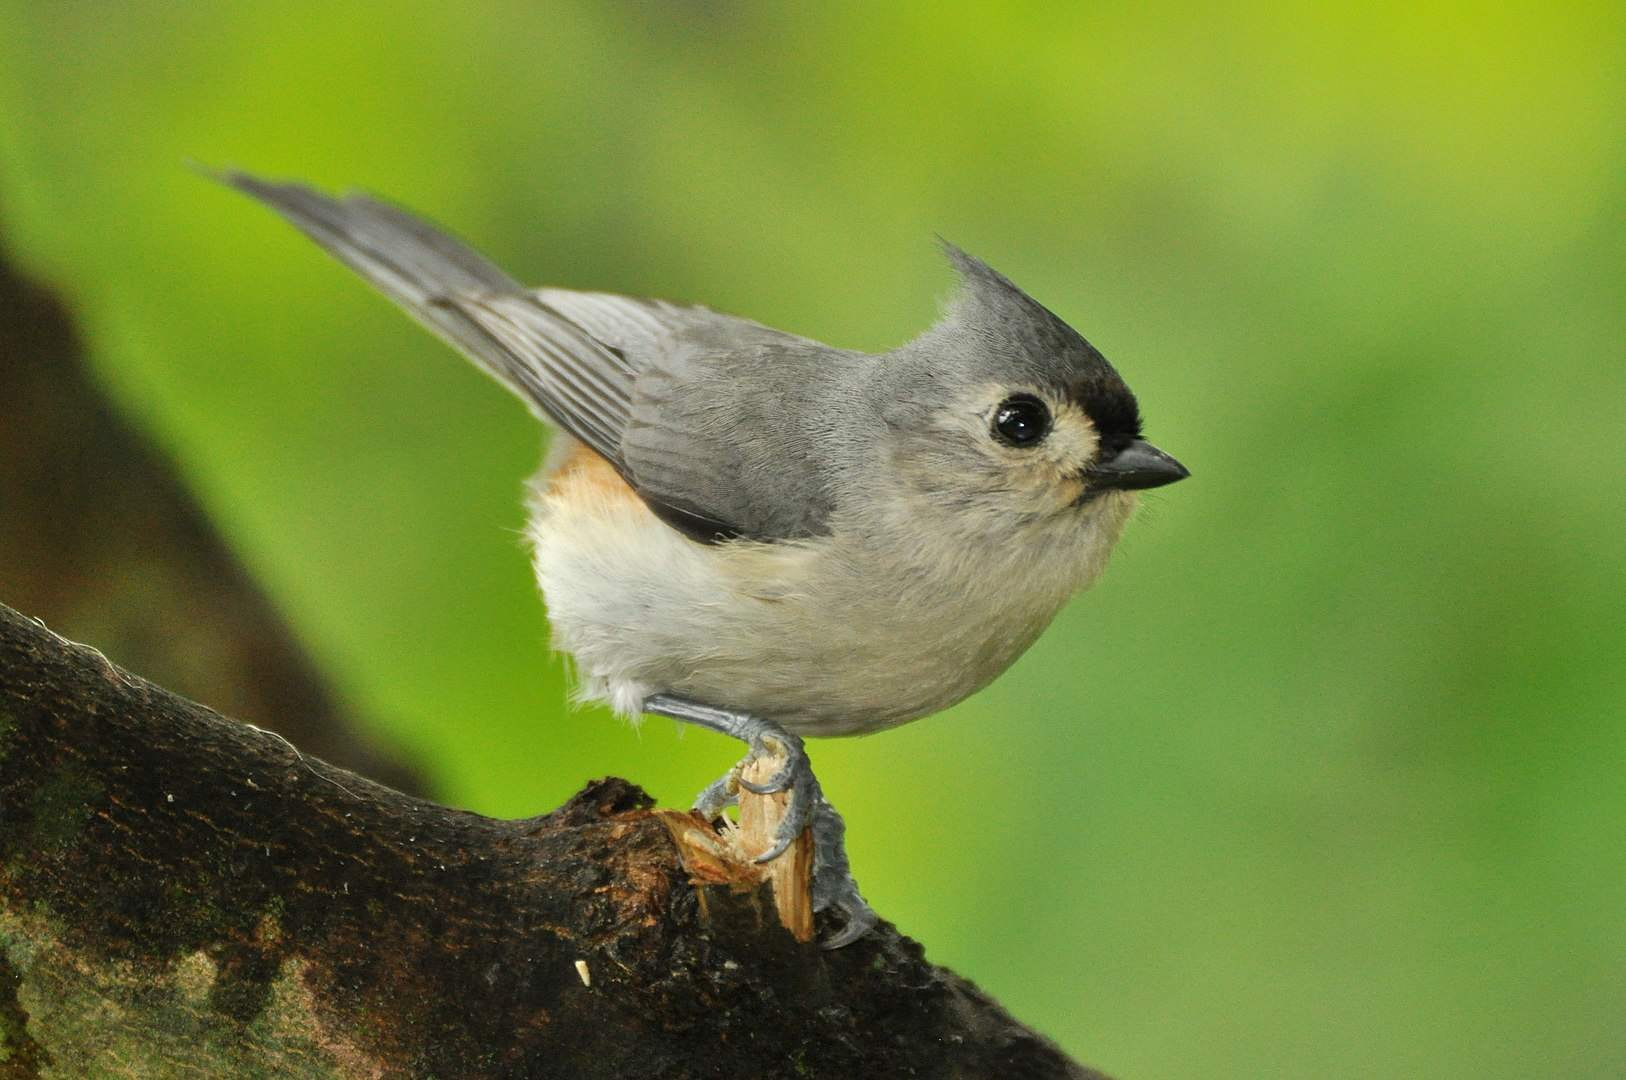 Tufted titmouse sitting on a branch close up.